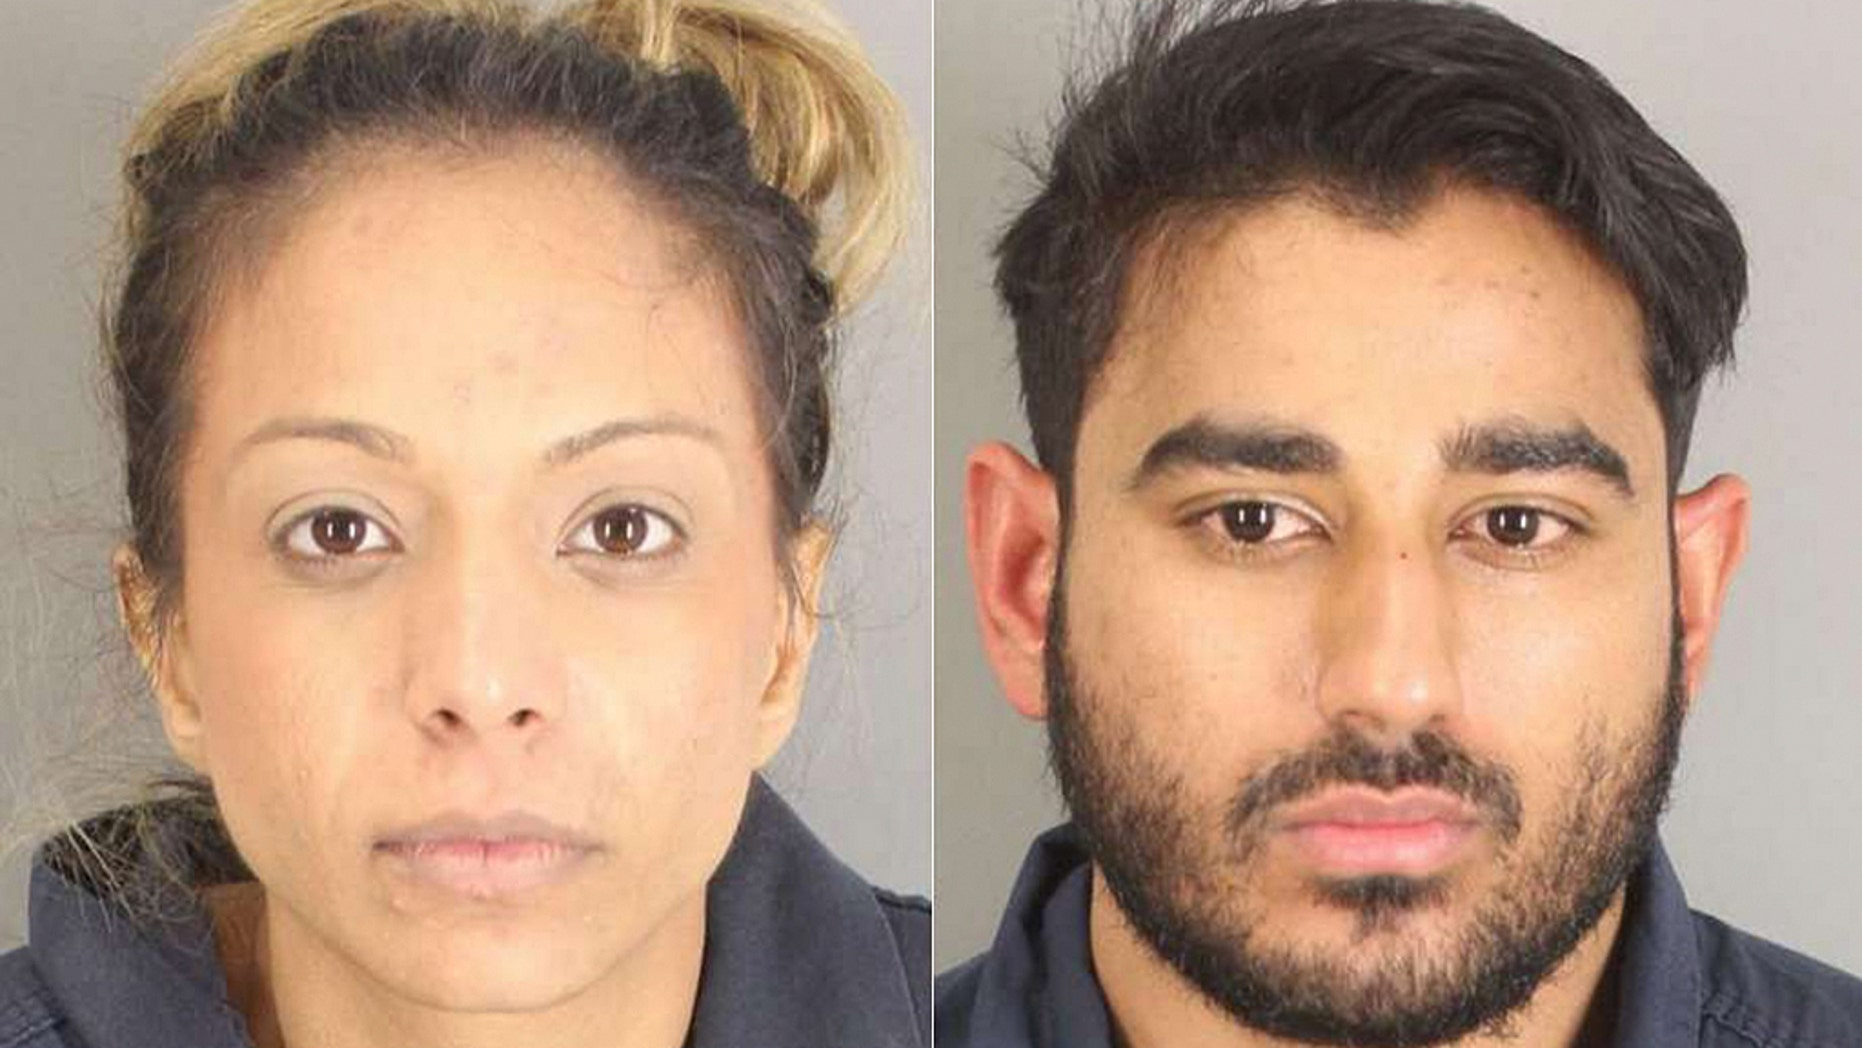 Authorities say Narueen Nooralla Gheewalla-Fayyaz, 28, (l.) and Osama Fayyaz, 29, of Richmond, Tex., were arrested on marijuana smuggling charges at a Texas airport Jan. 14, according to a report.